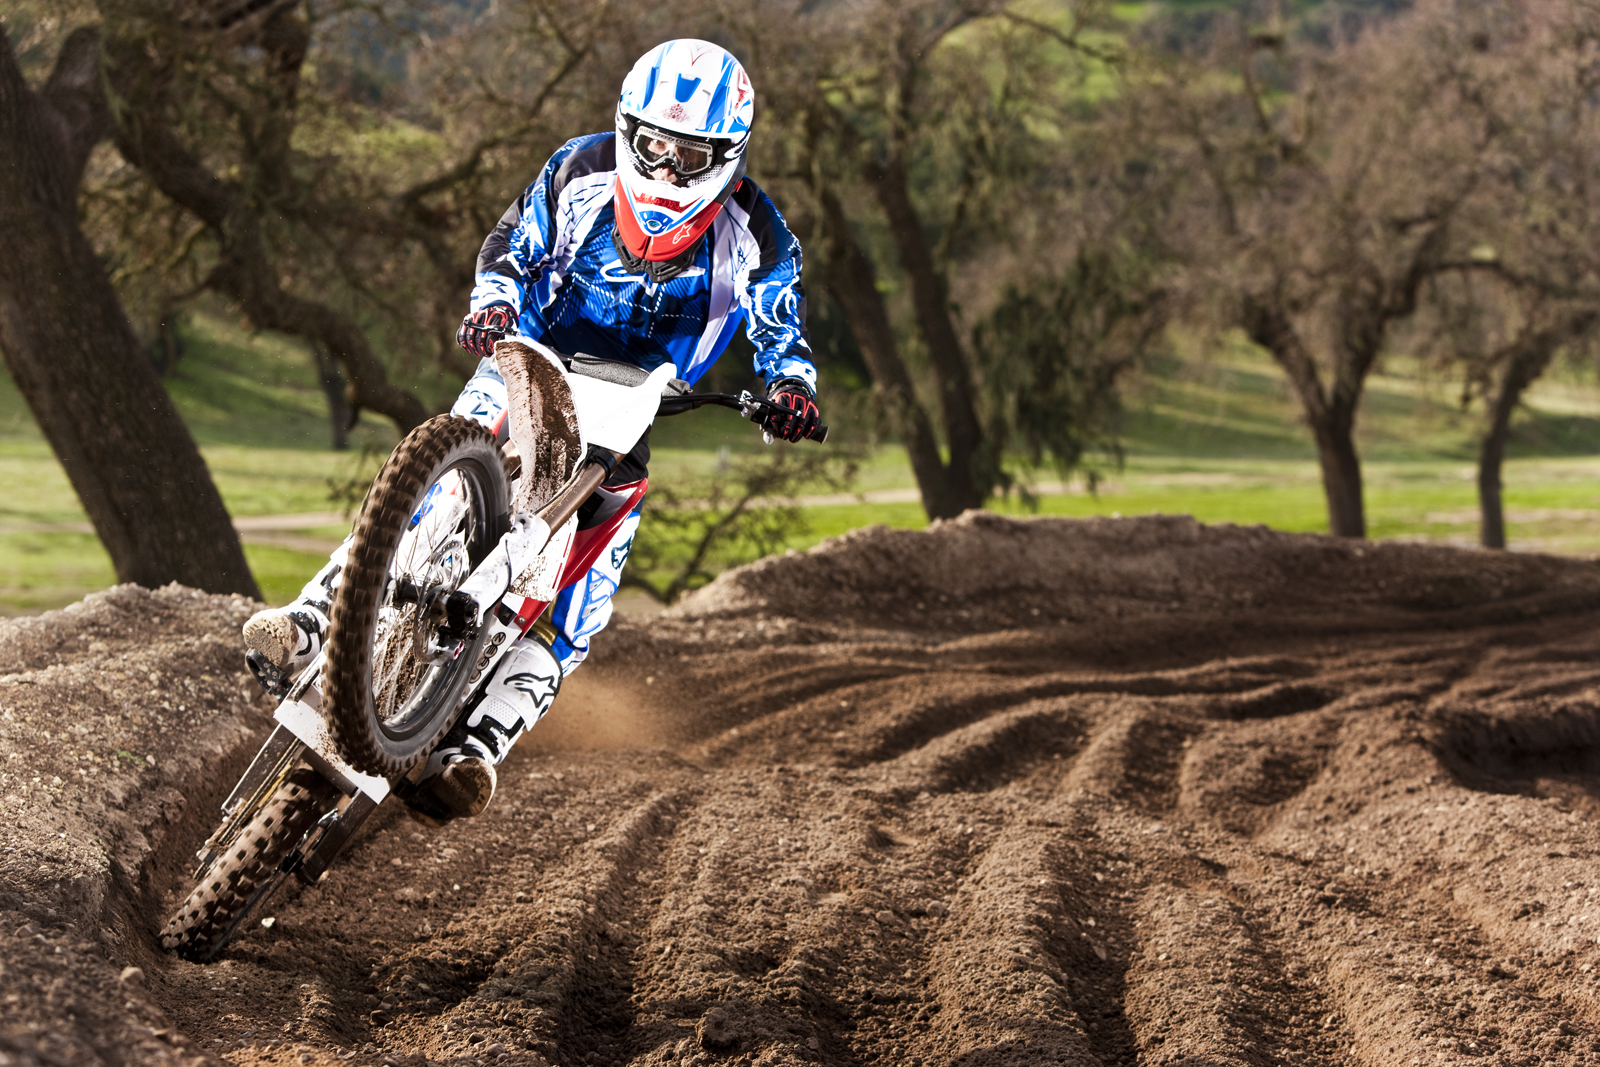 '.2010 Zero MX Electric Motorcycle: Zaca Station - Wheelie out of Corner.'